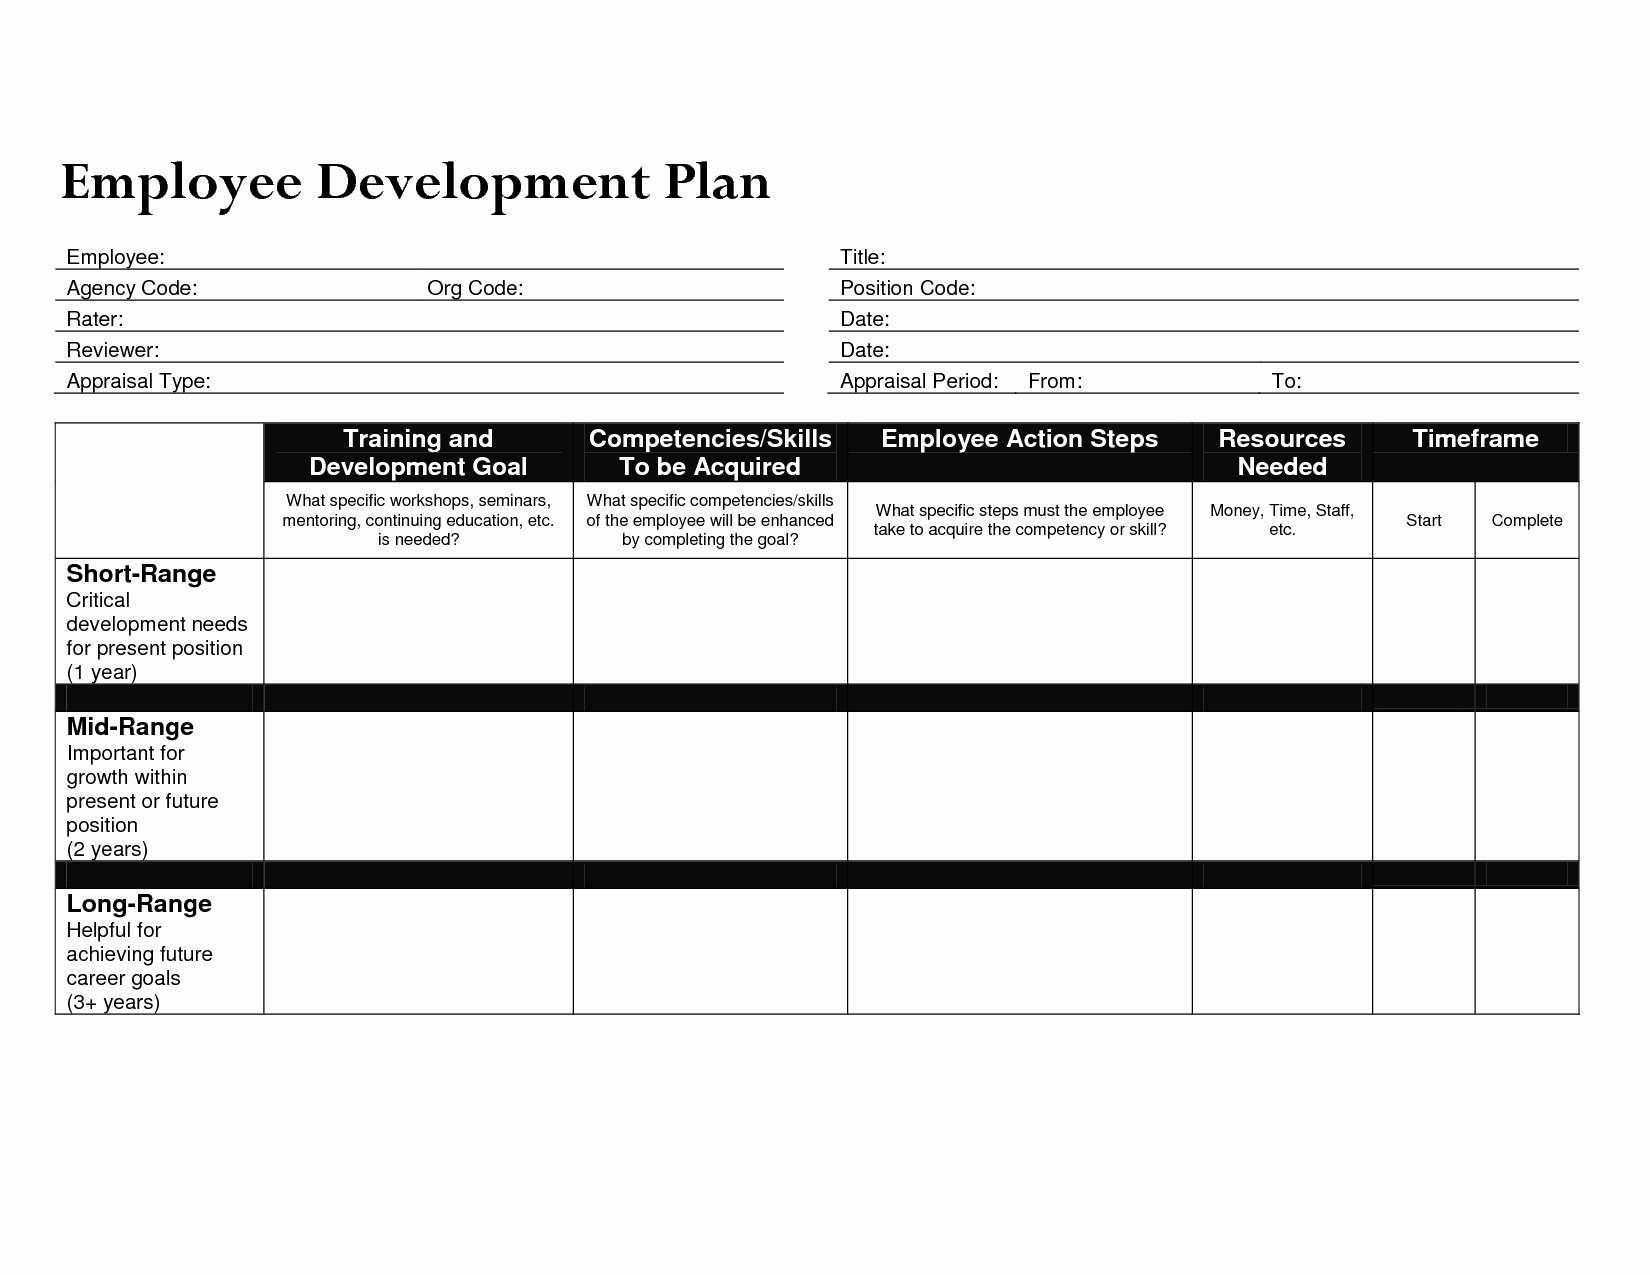 Employee Development Plan Template New Development Plan Template for Employees